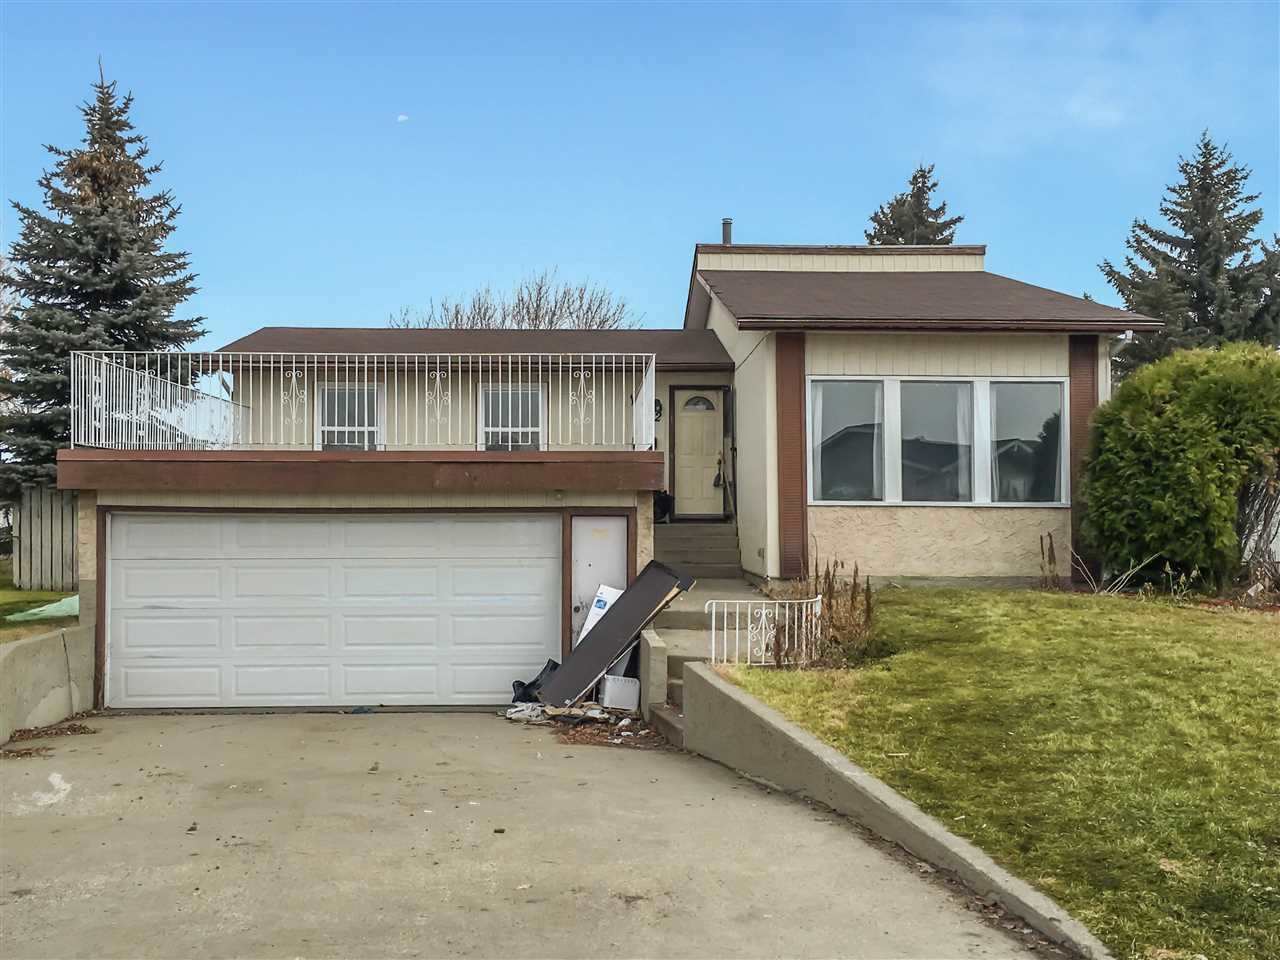 Fantastic 5 bedroom 1453 sq foot bungalow. West facing roof top patio located on the double front attached garage with a 8000 sq foot YARD in Cul De Sac. This is a HANDY Man Special requires some work, including finishing the basement bathroom, baseboards, panting, landscaping, cabinets and appliances in a great family neighborhood close to the River Valley in the NE quadrant of Edmonton. Recent upgrades include, shingles, hot water tank and furnace.